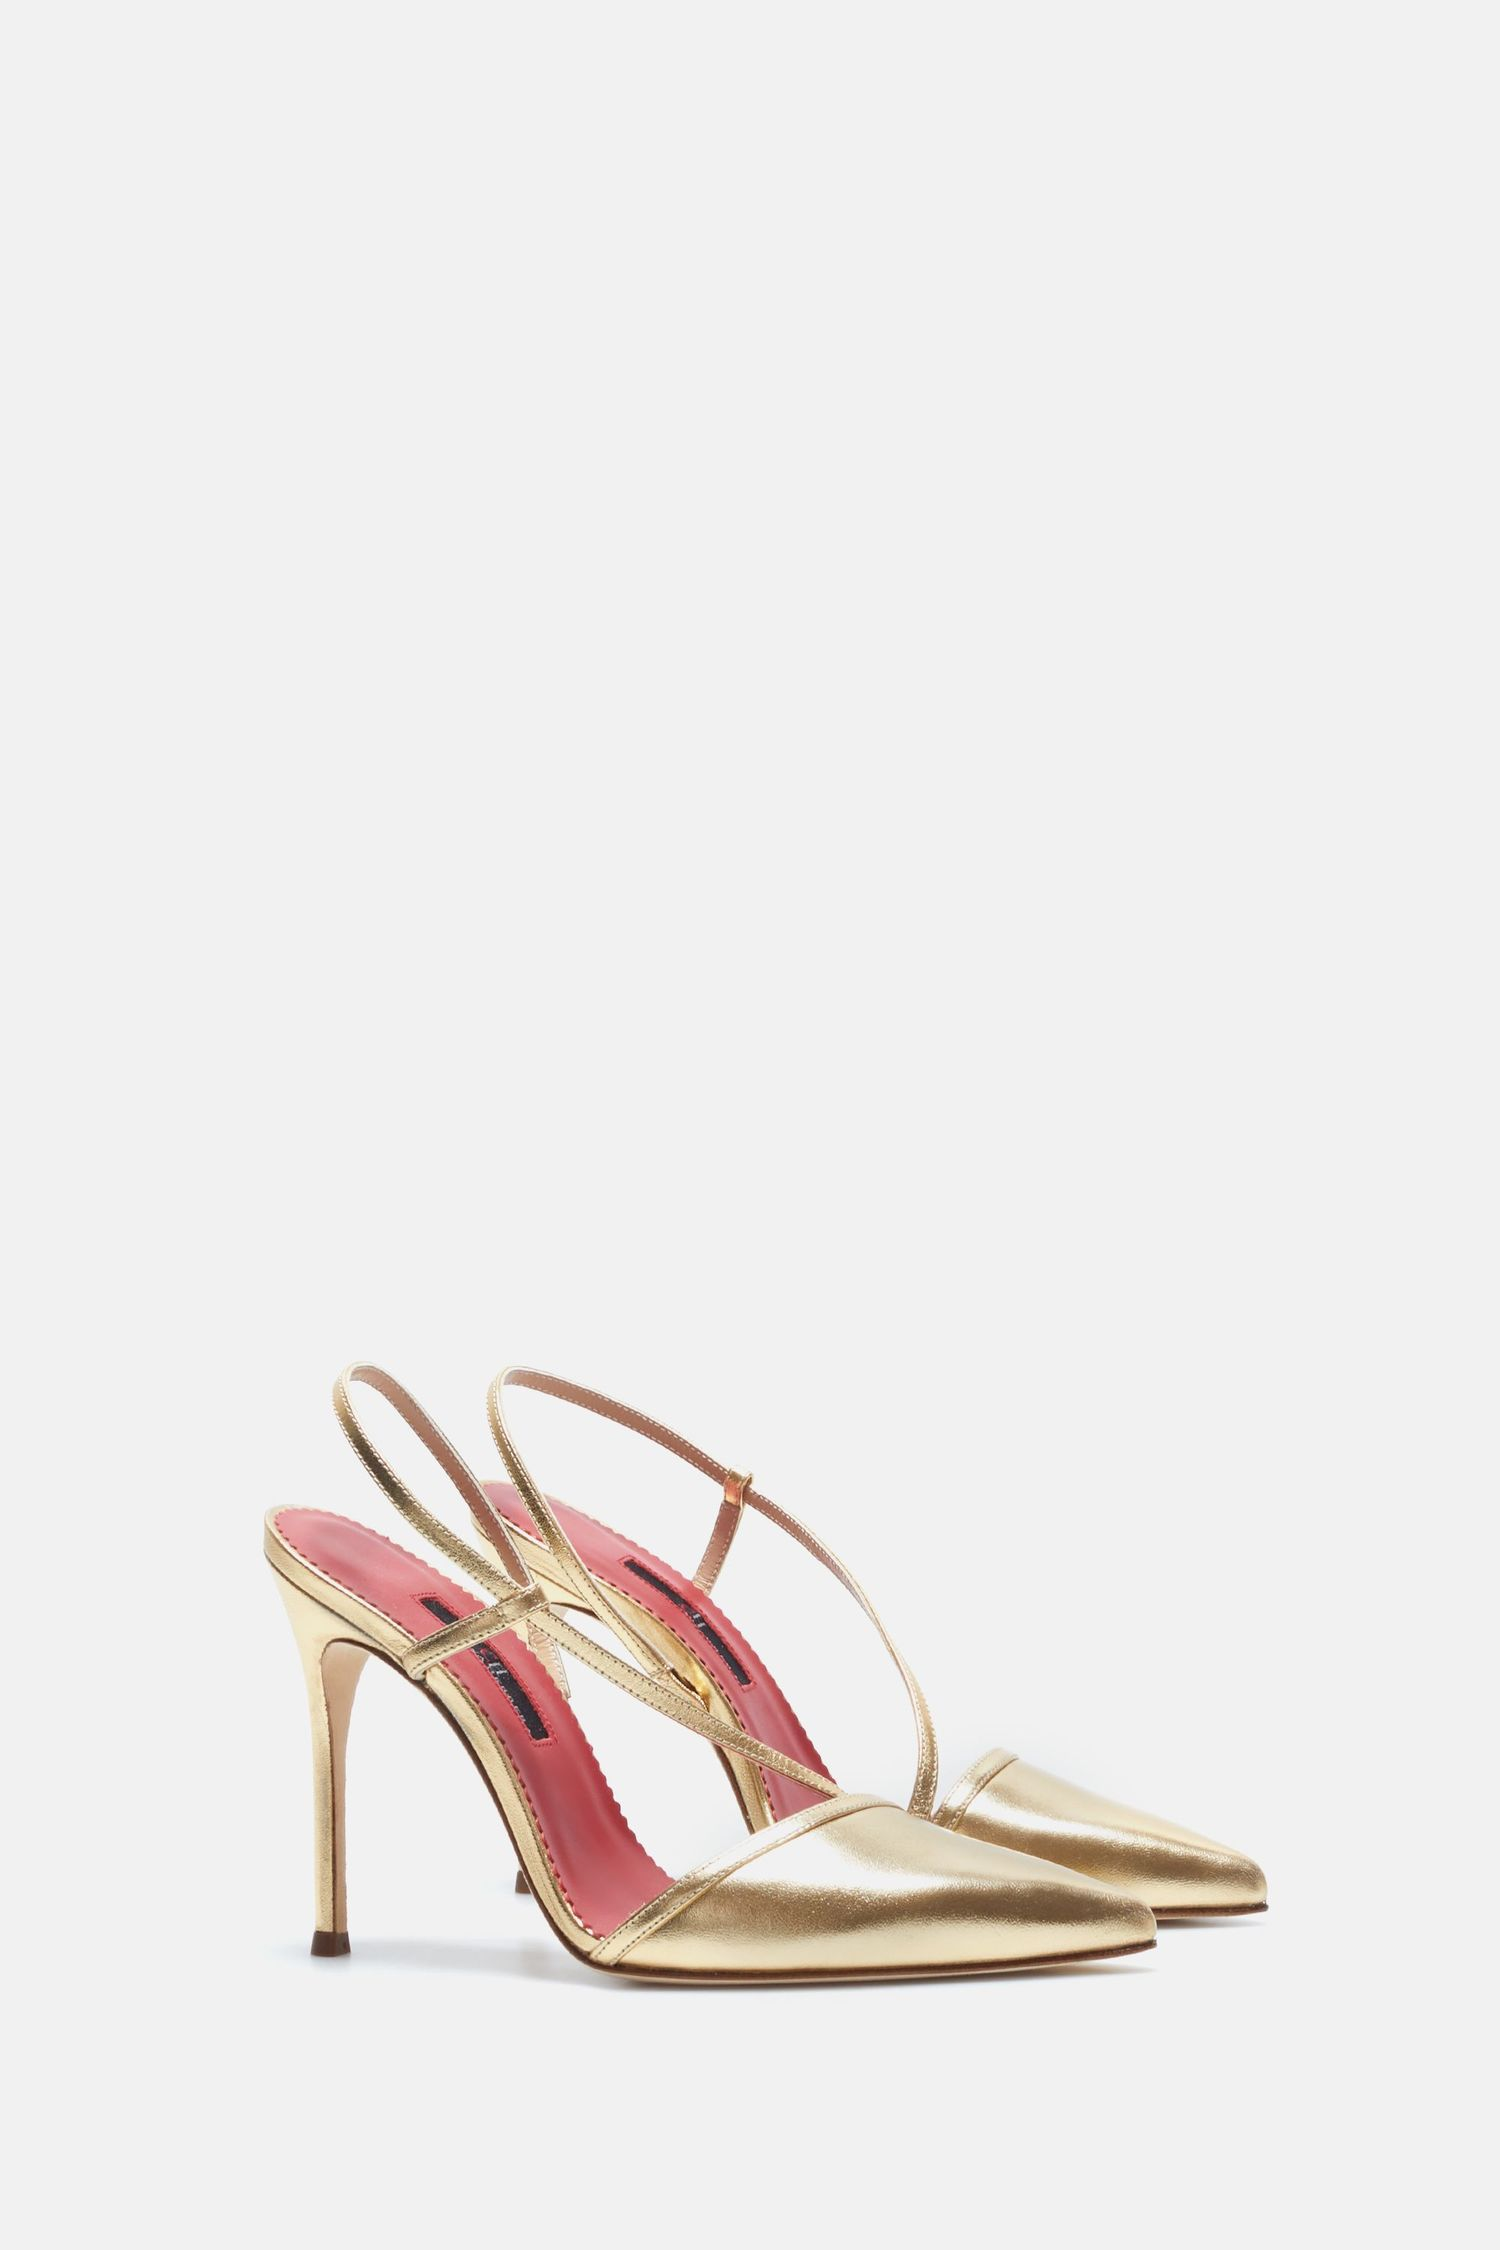 Napa leather pumps with straps